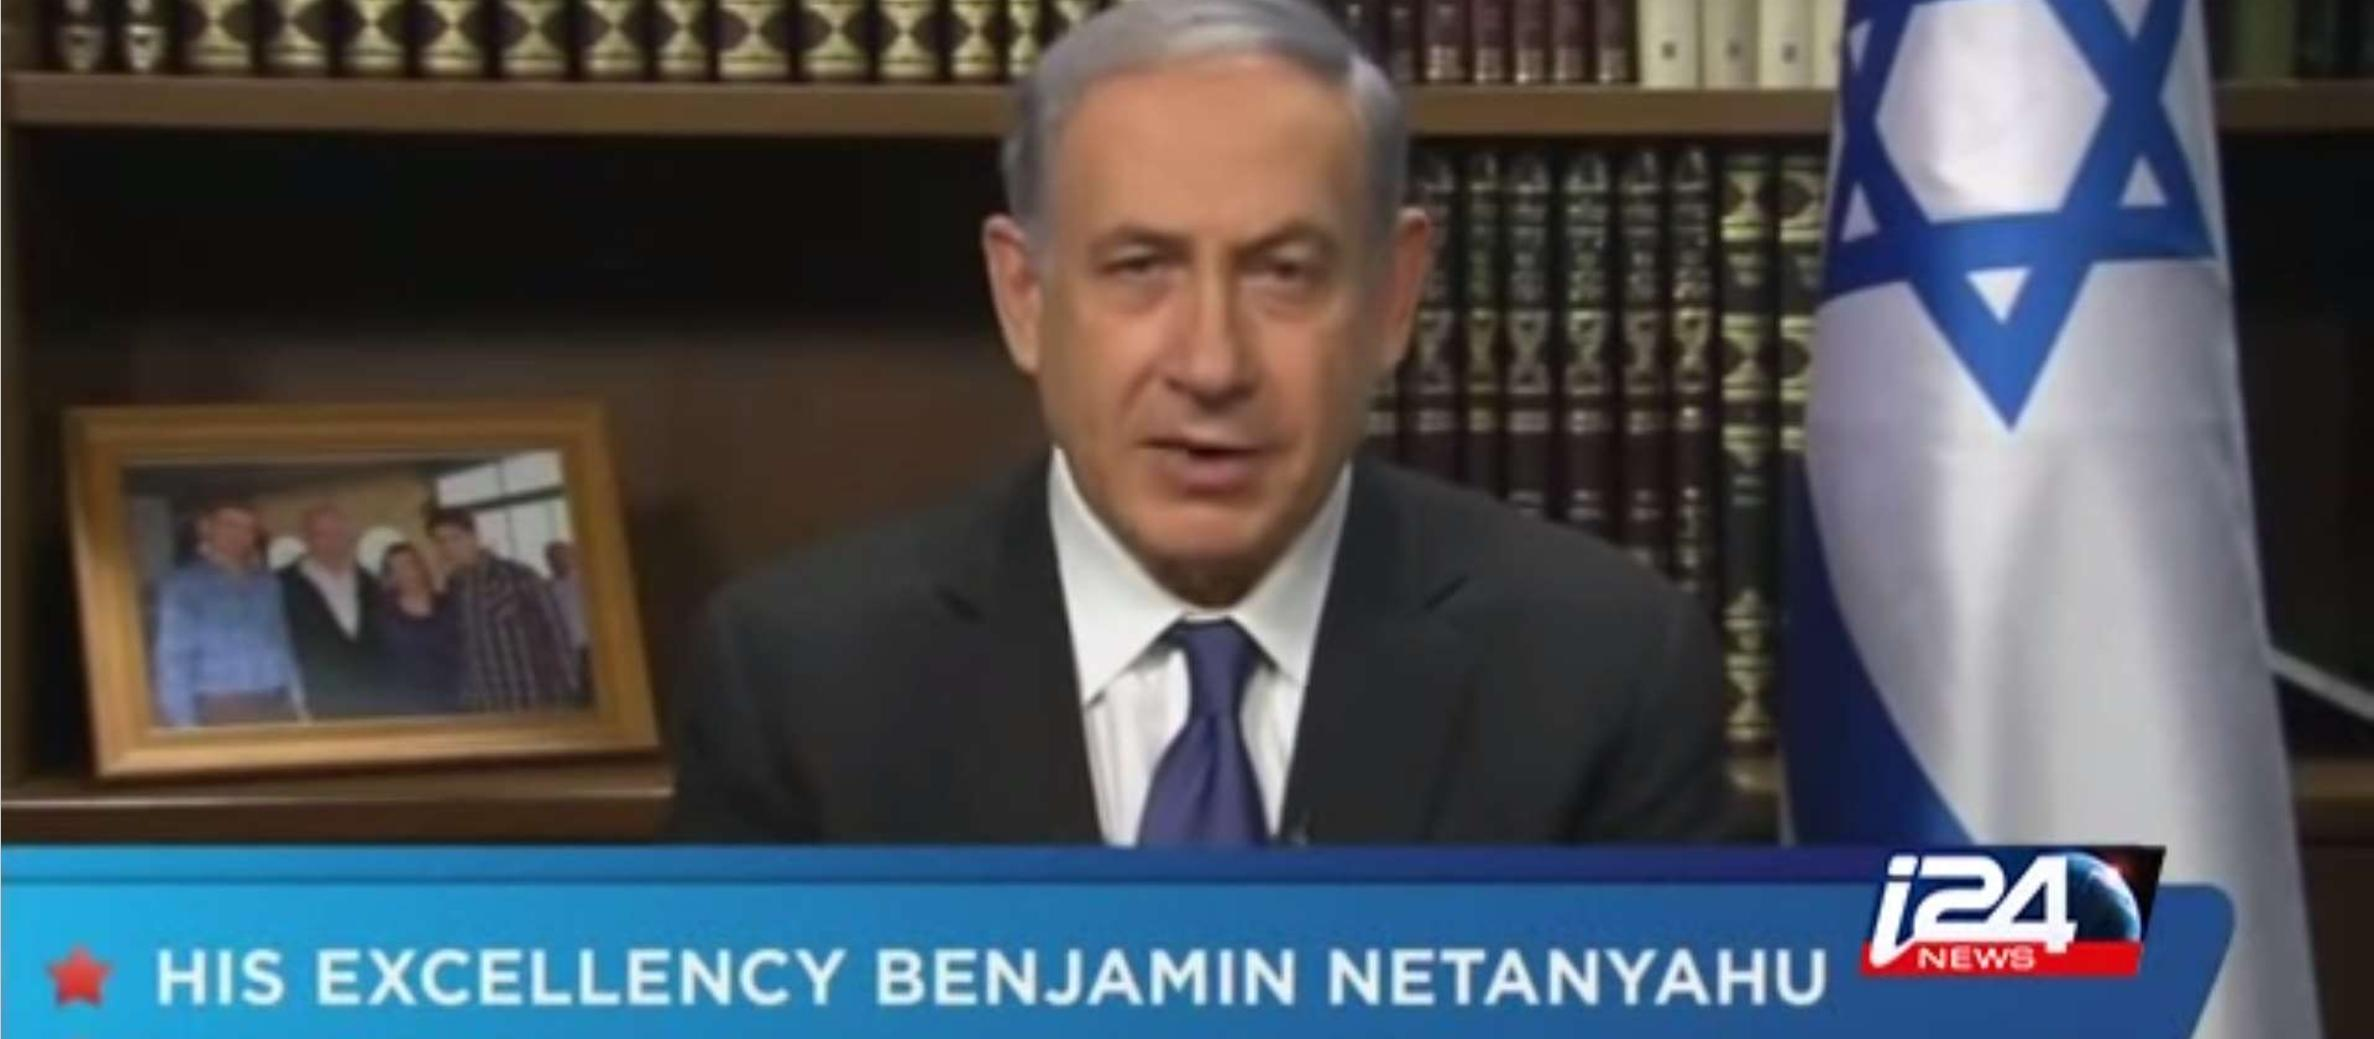 VIDEO: Netanyahu pleads with US Jews to oppose Iran deal